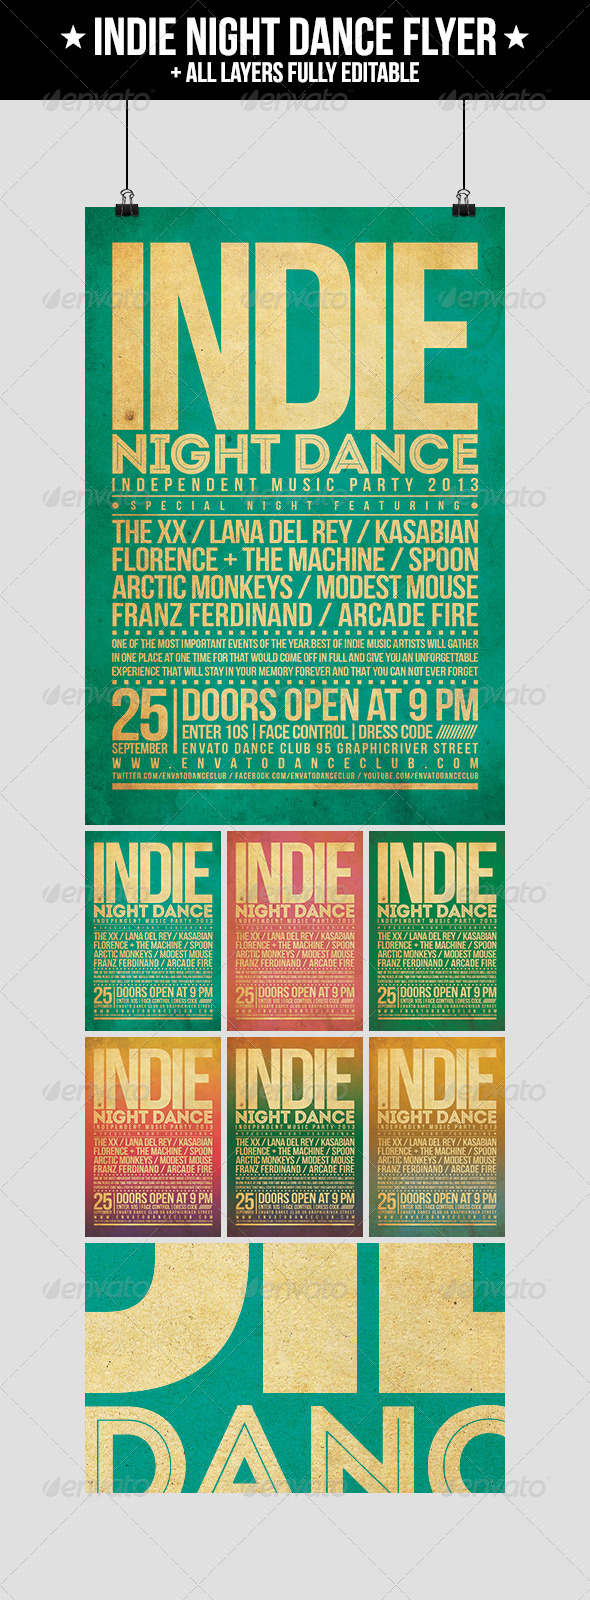 Indie Night Dance Flyer - Concerts Events